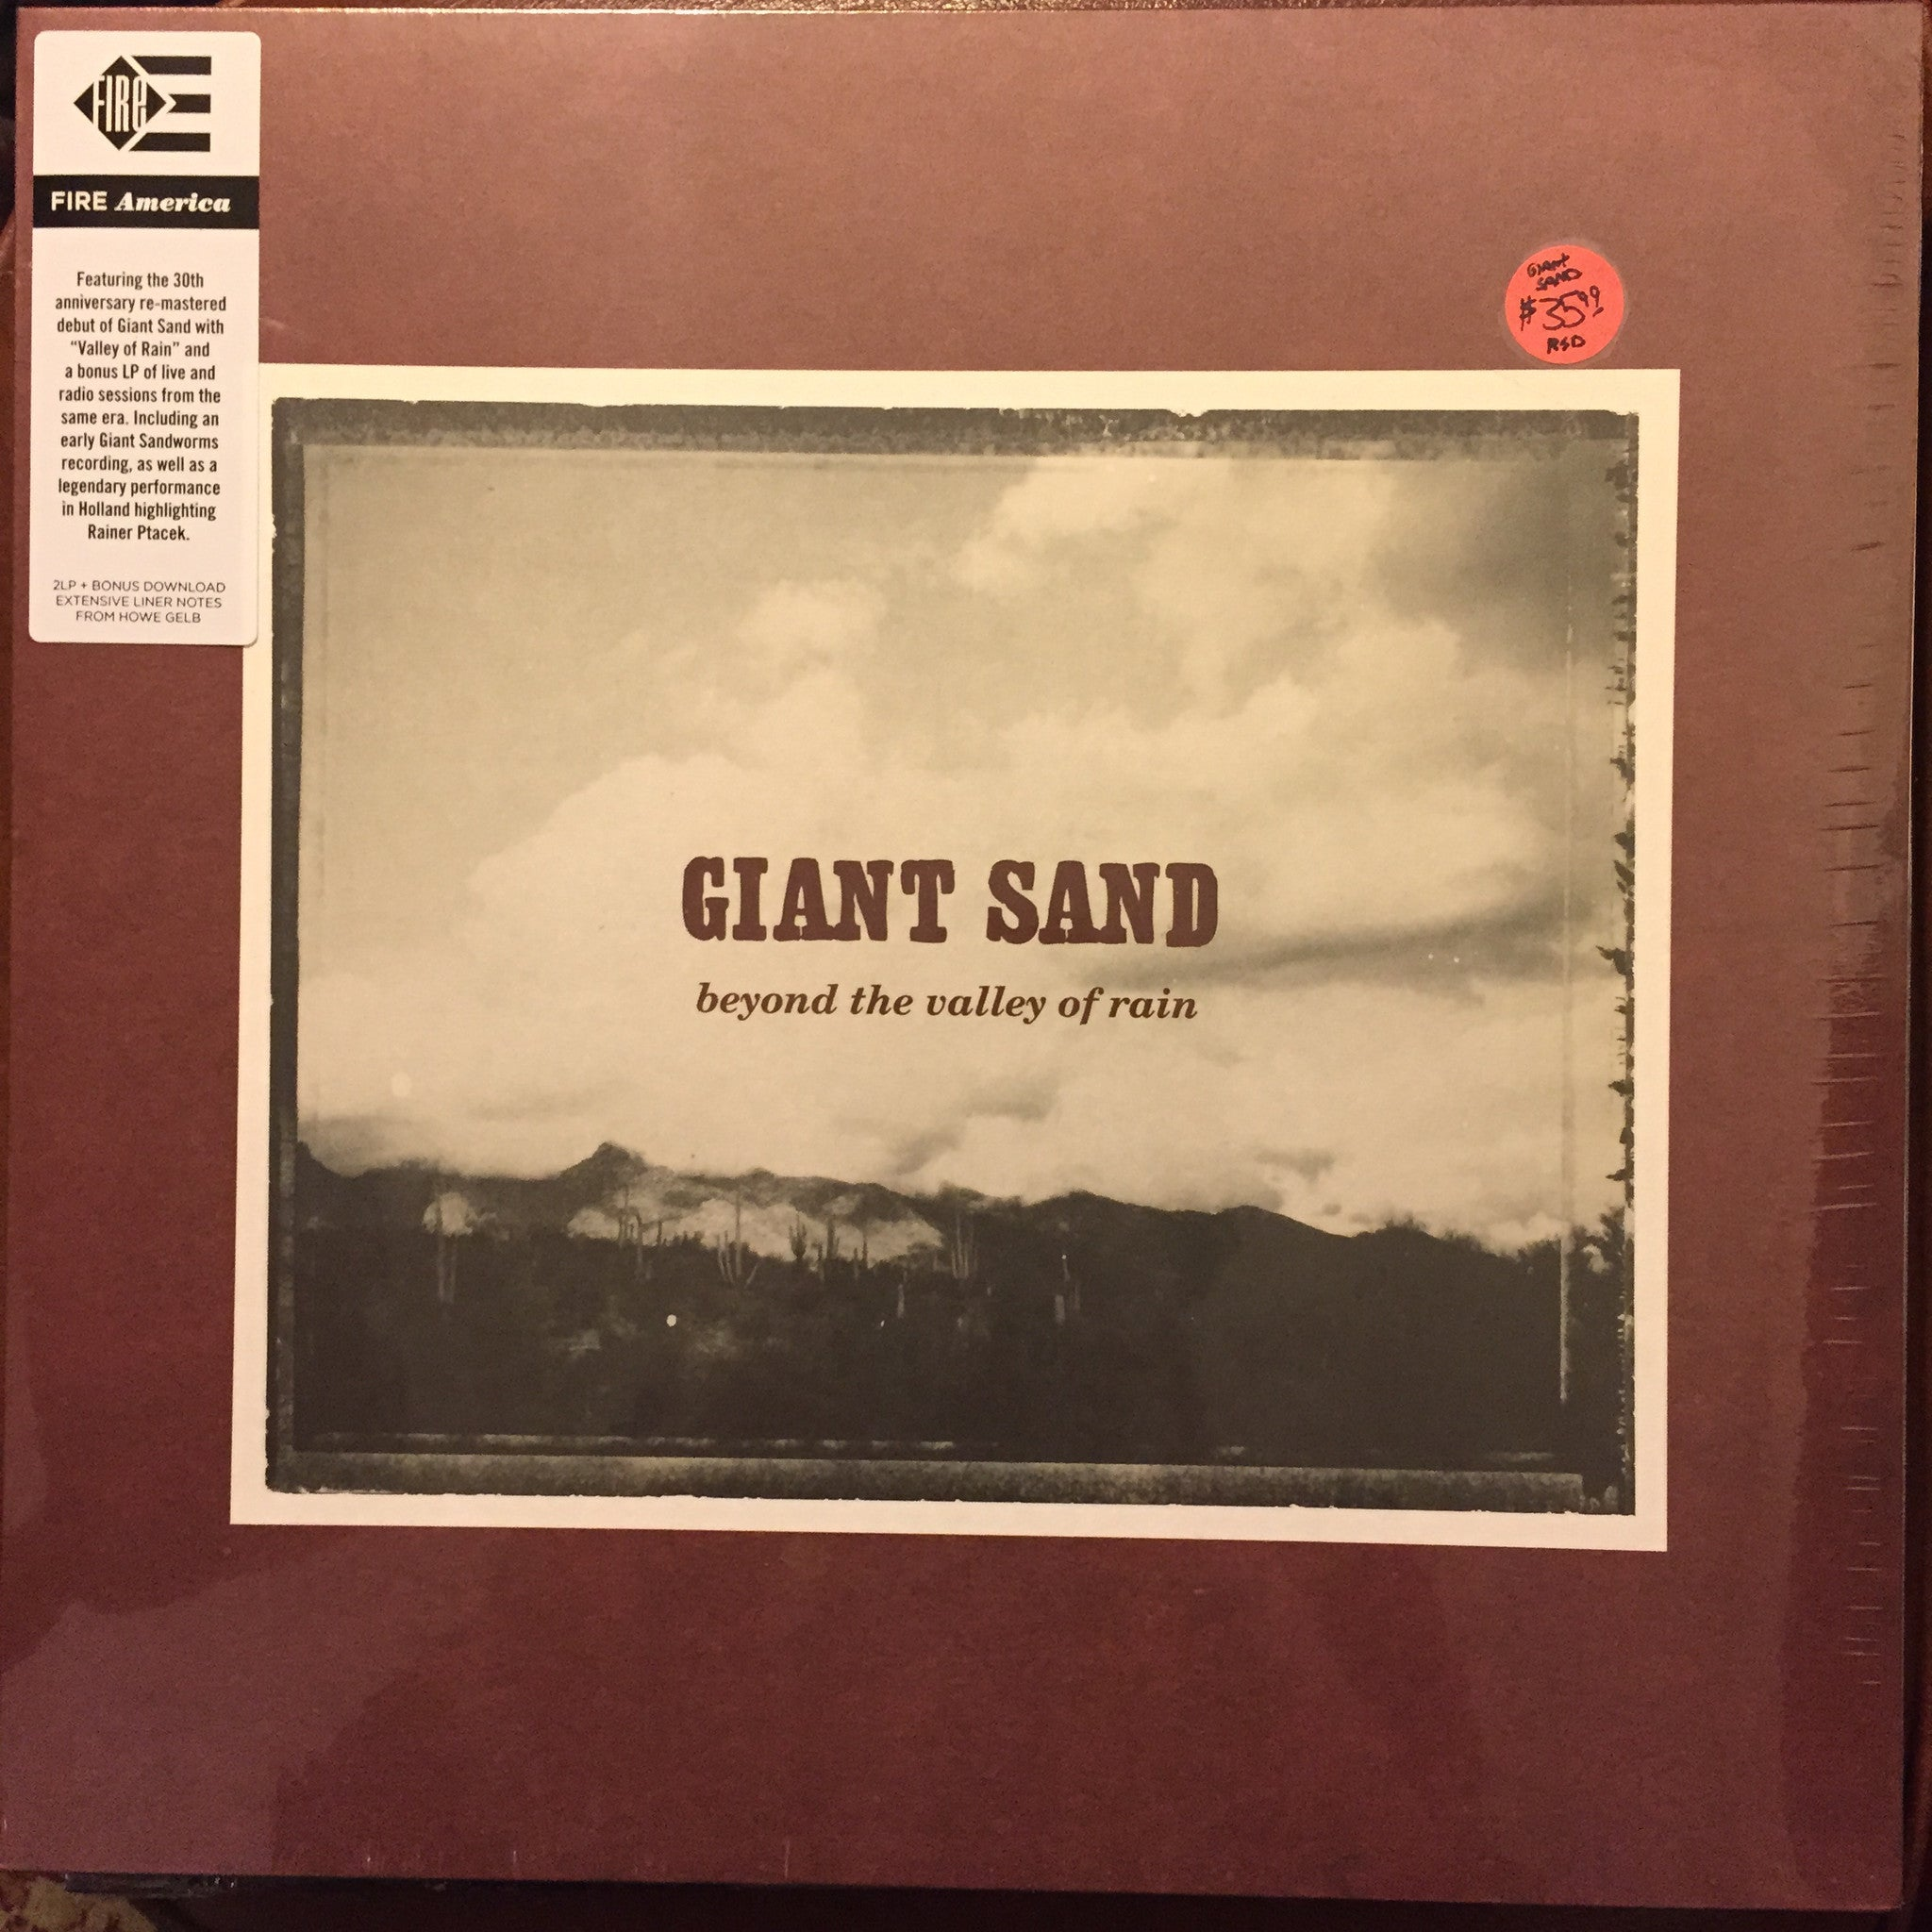 Giant Sand - Beyond the Valley of Rain 2xLP (30th Anniversary) - RSD 2015 NEW/SEALED